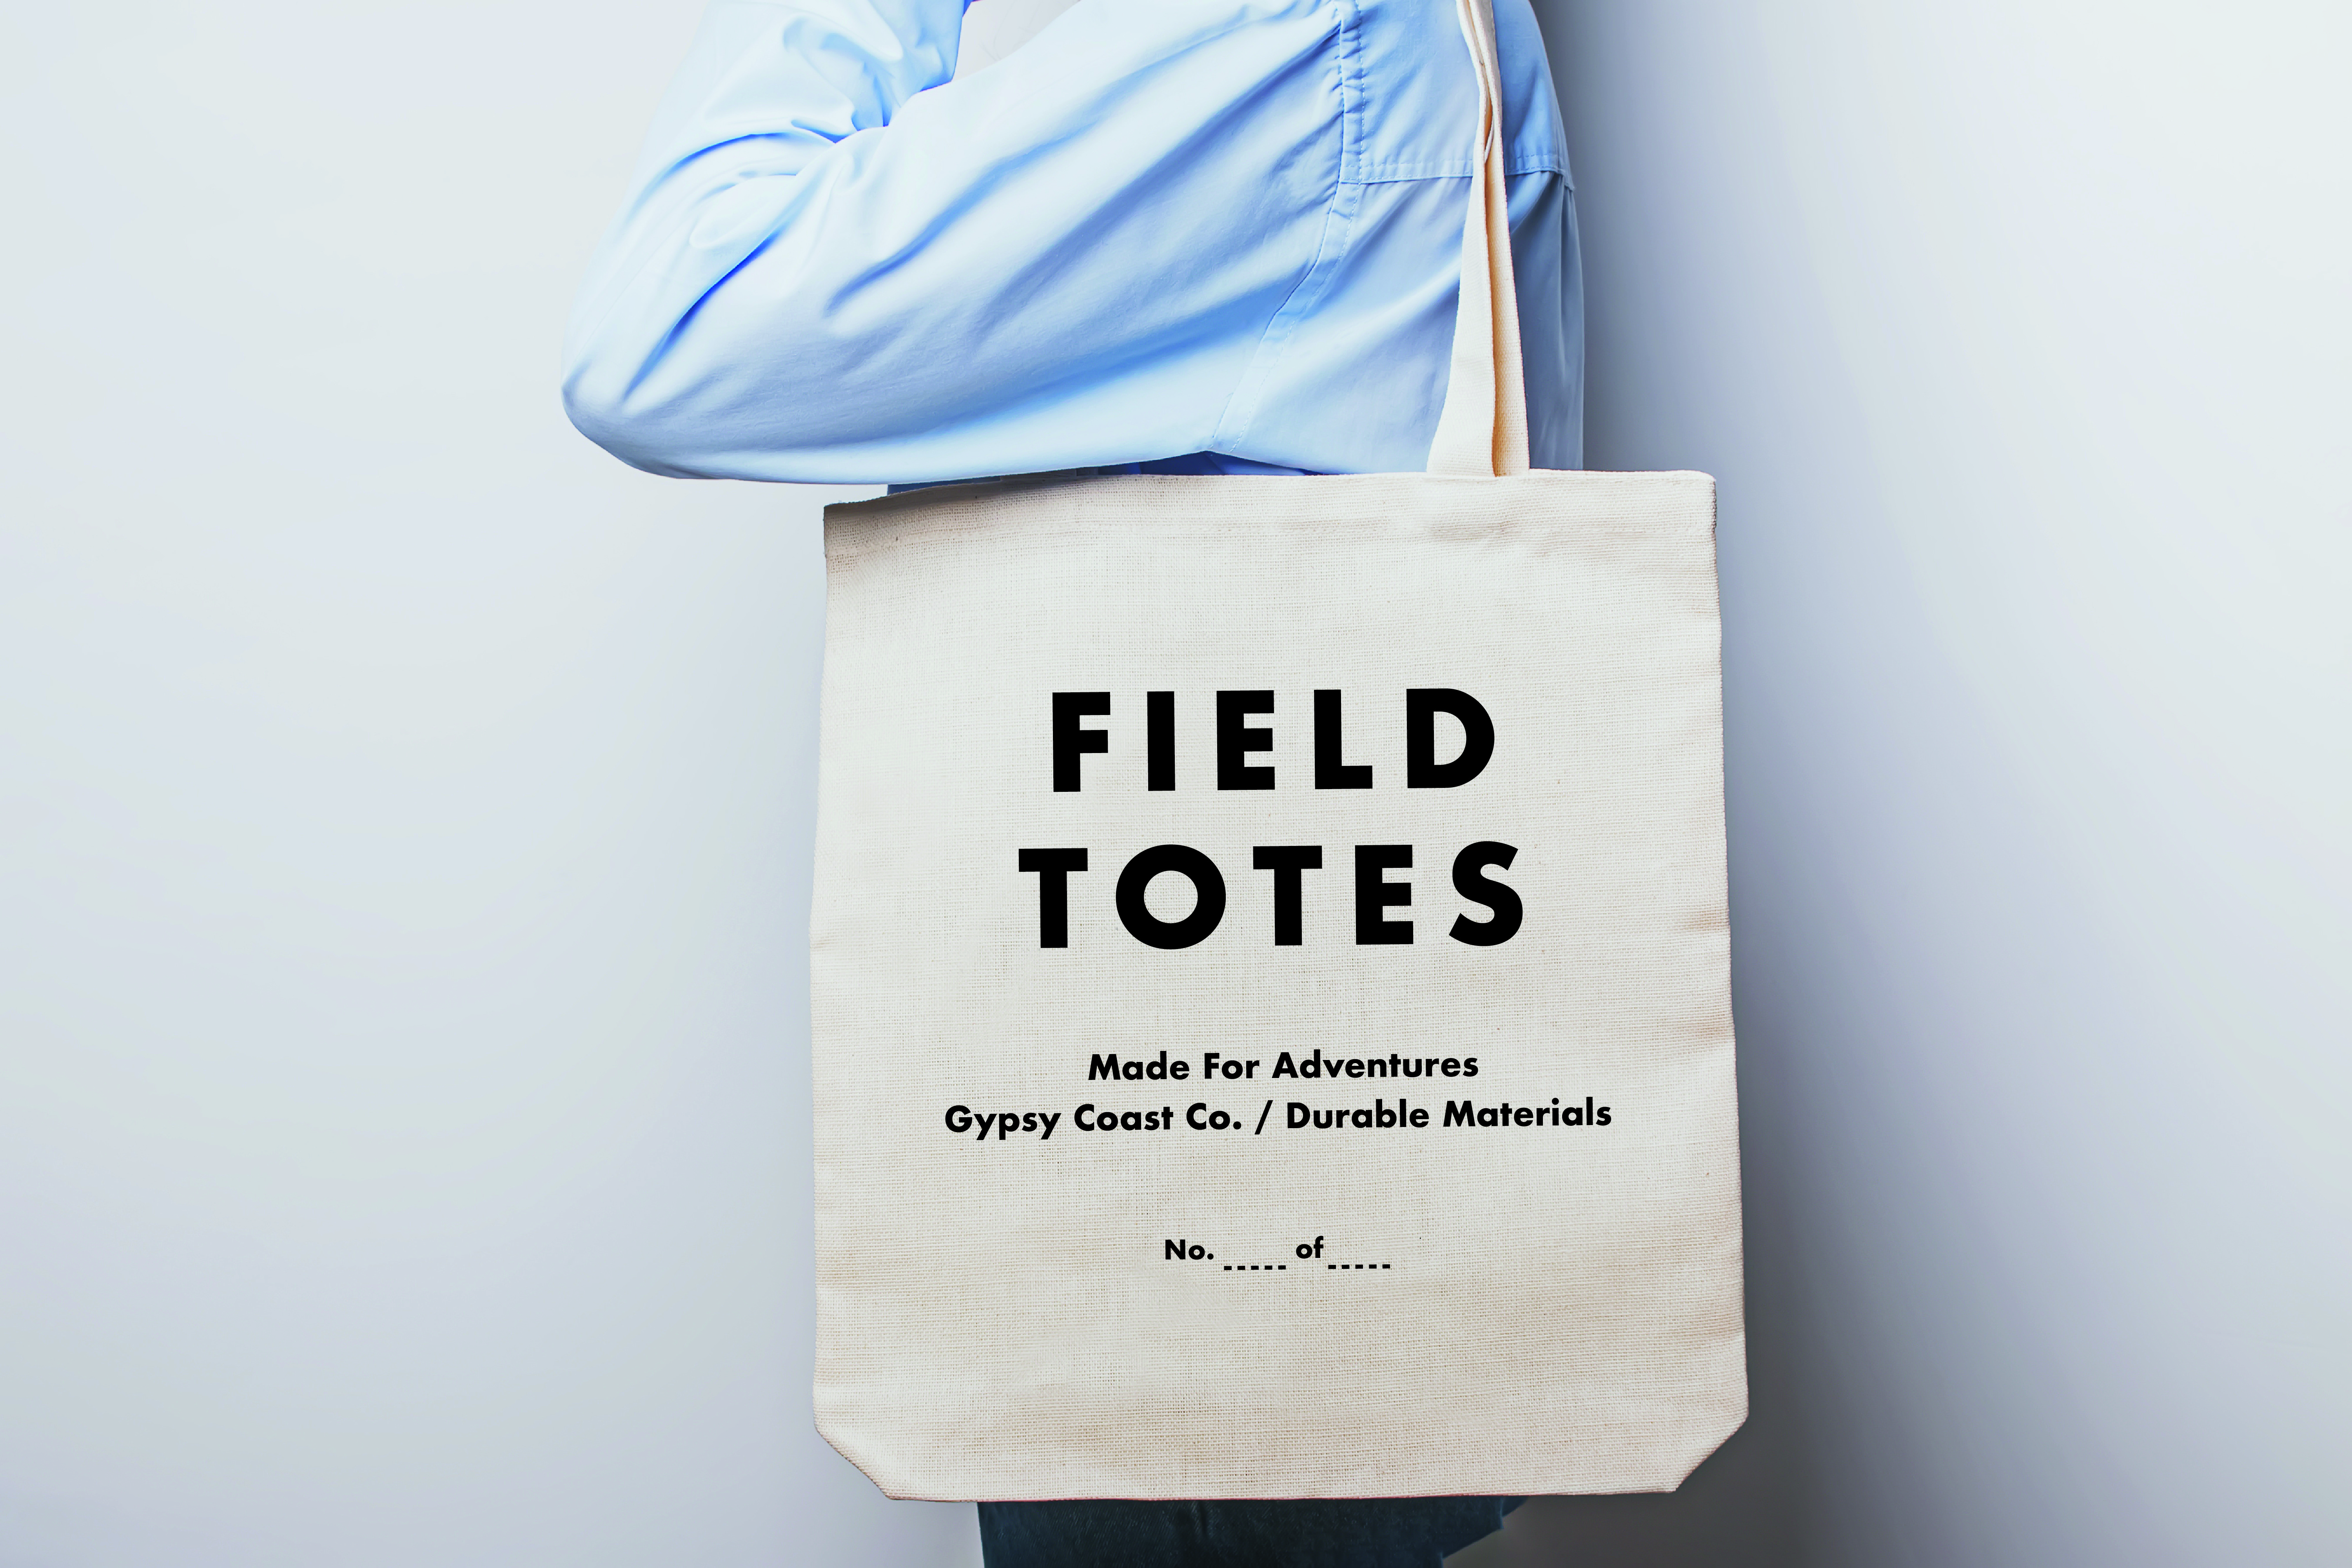 Field Totes